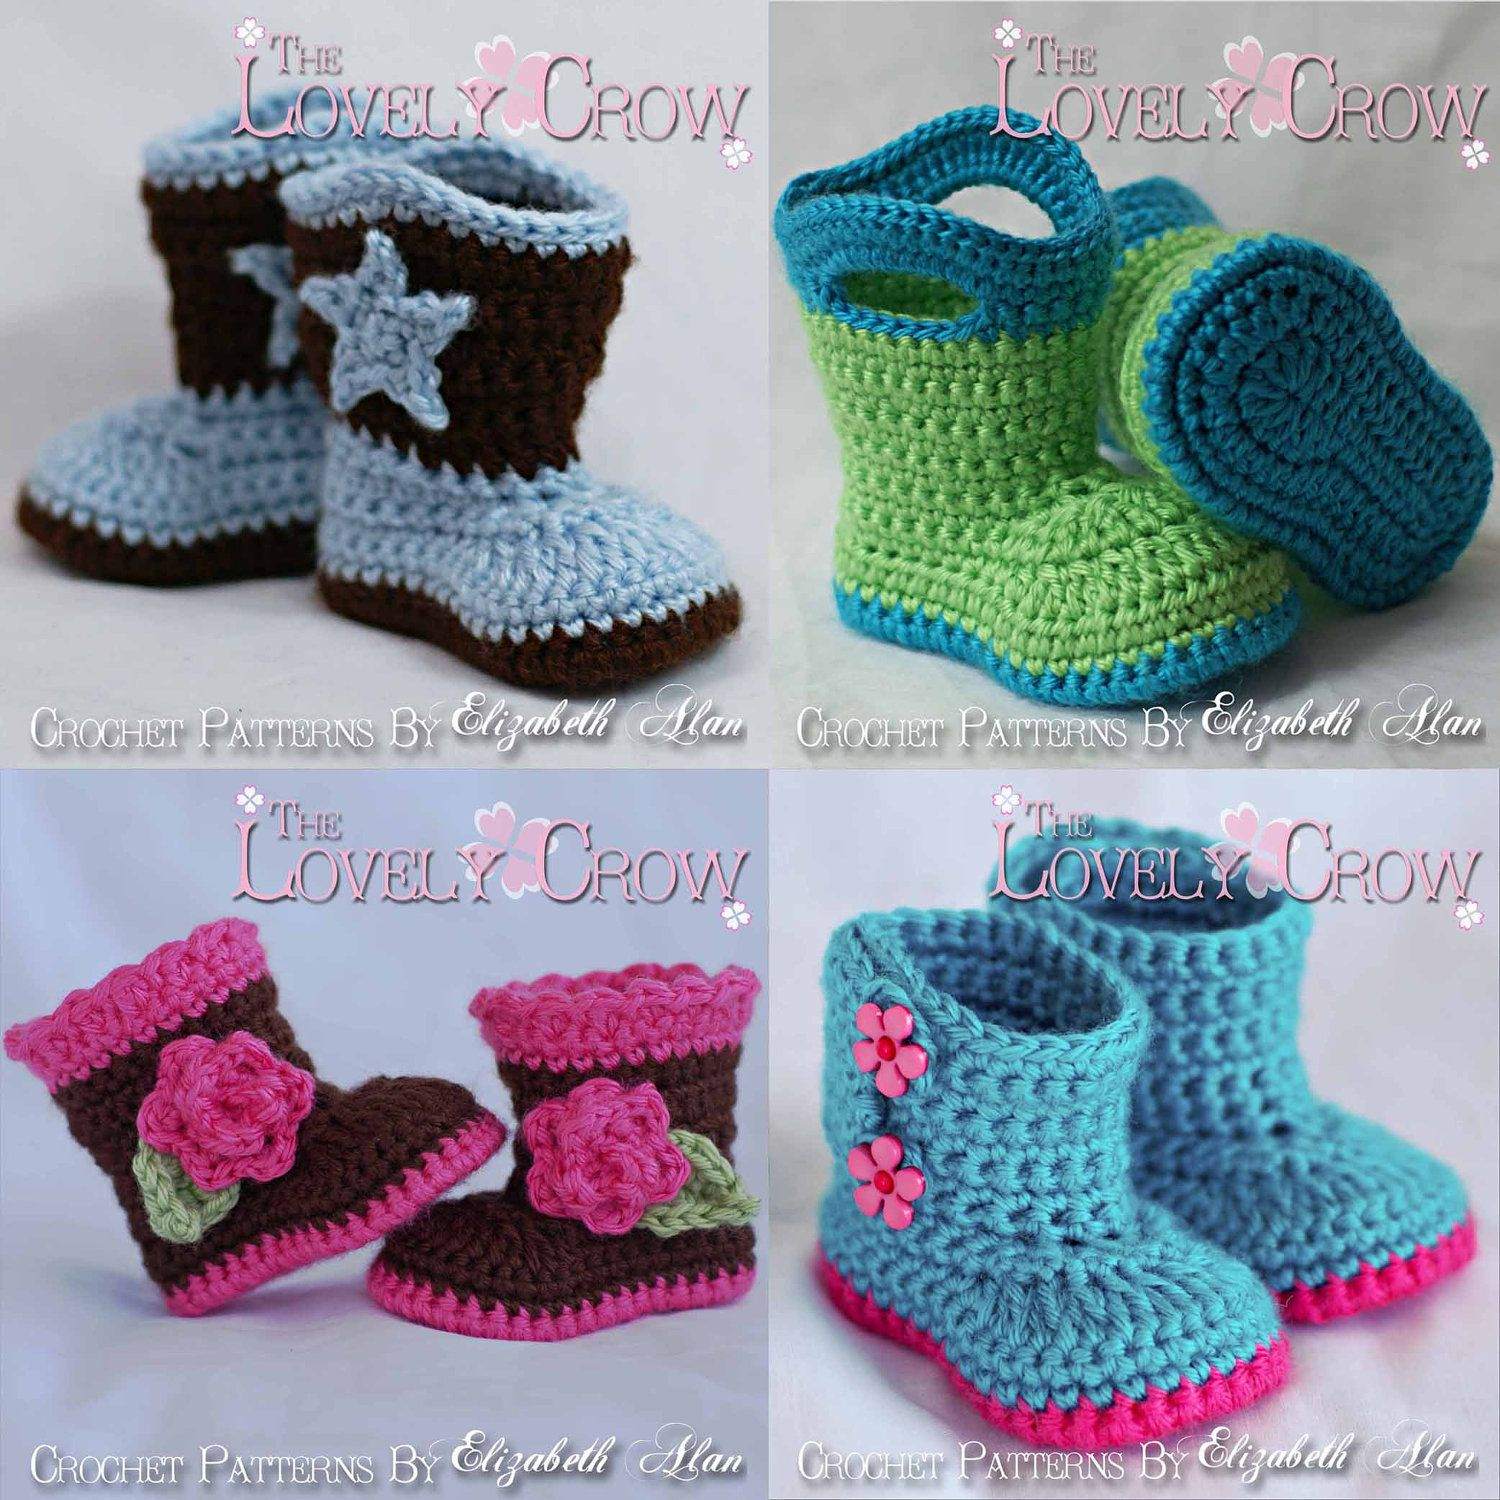 Free crochet patterns for baby booties baby booties crochet free crochet patterns for baby booties baby booties crochet patterns all 4 patterns one by bankloansurffo Images